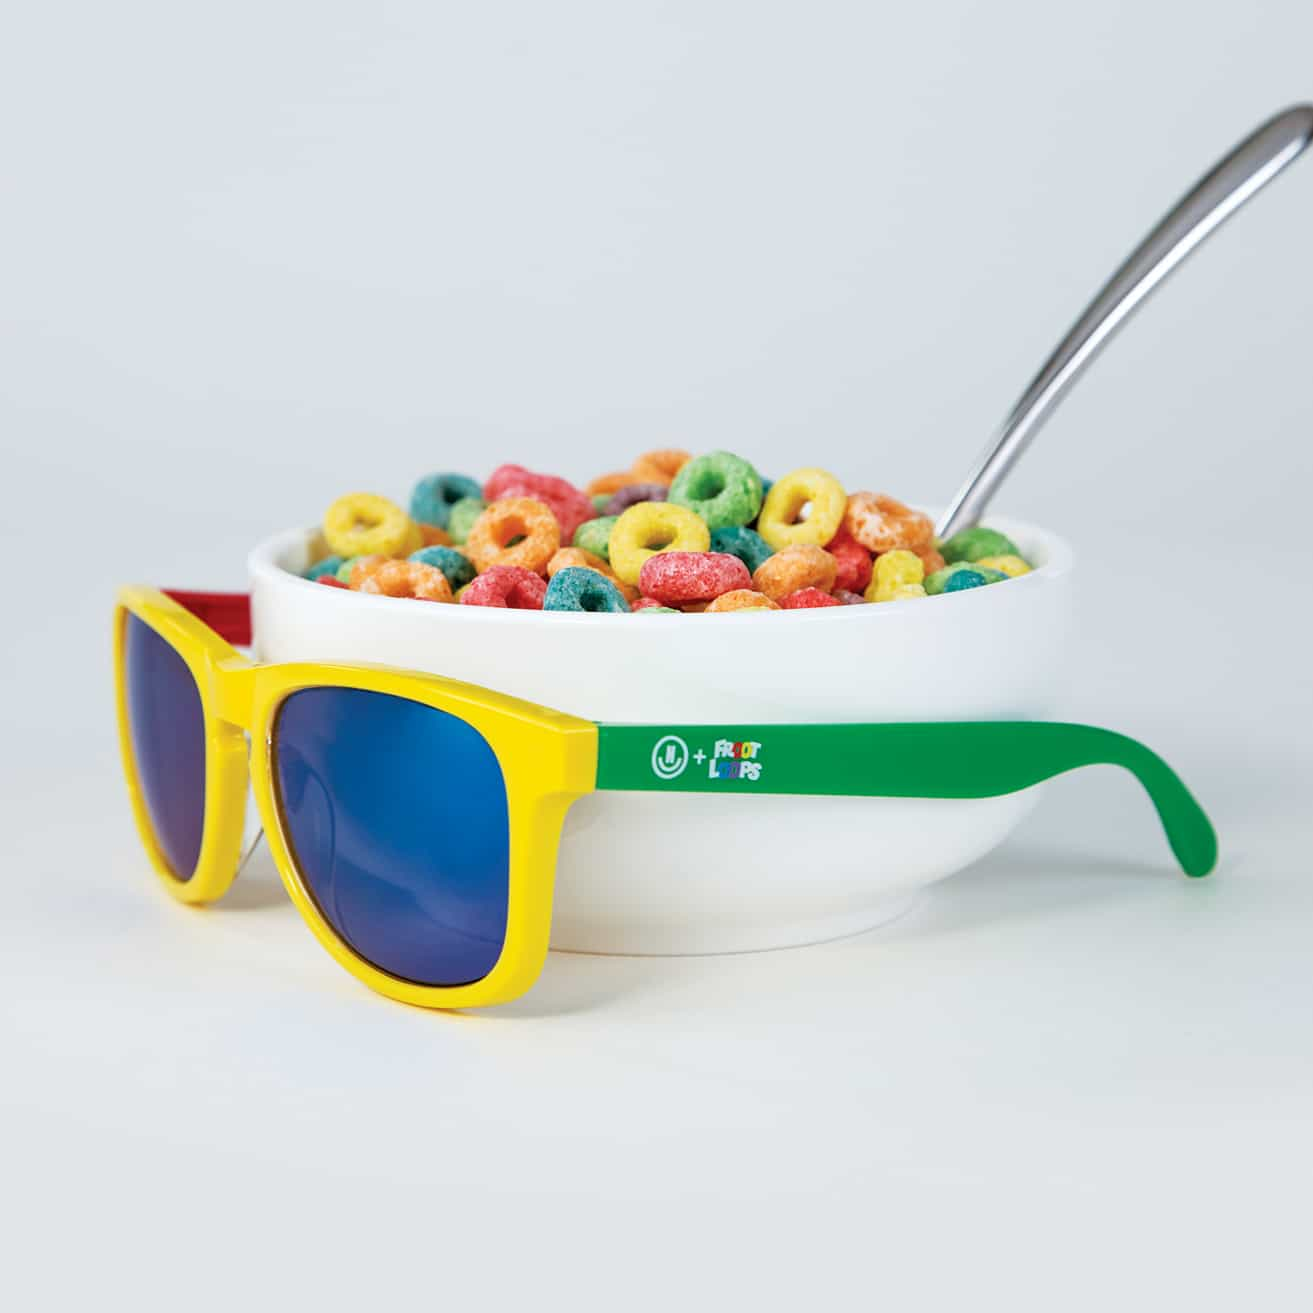 Neff Sunglasses with bowl of fruit loops